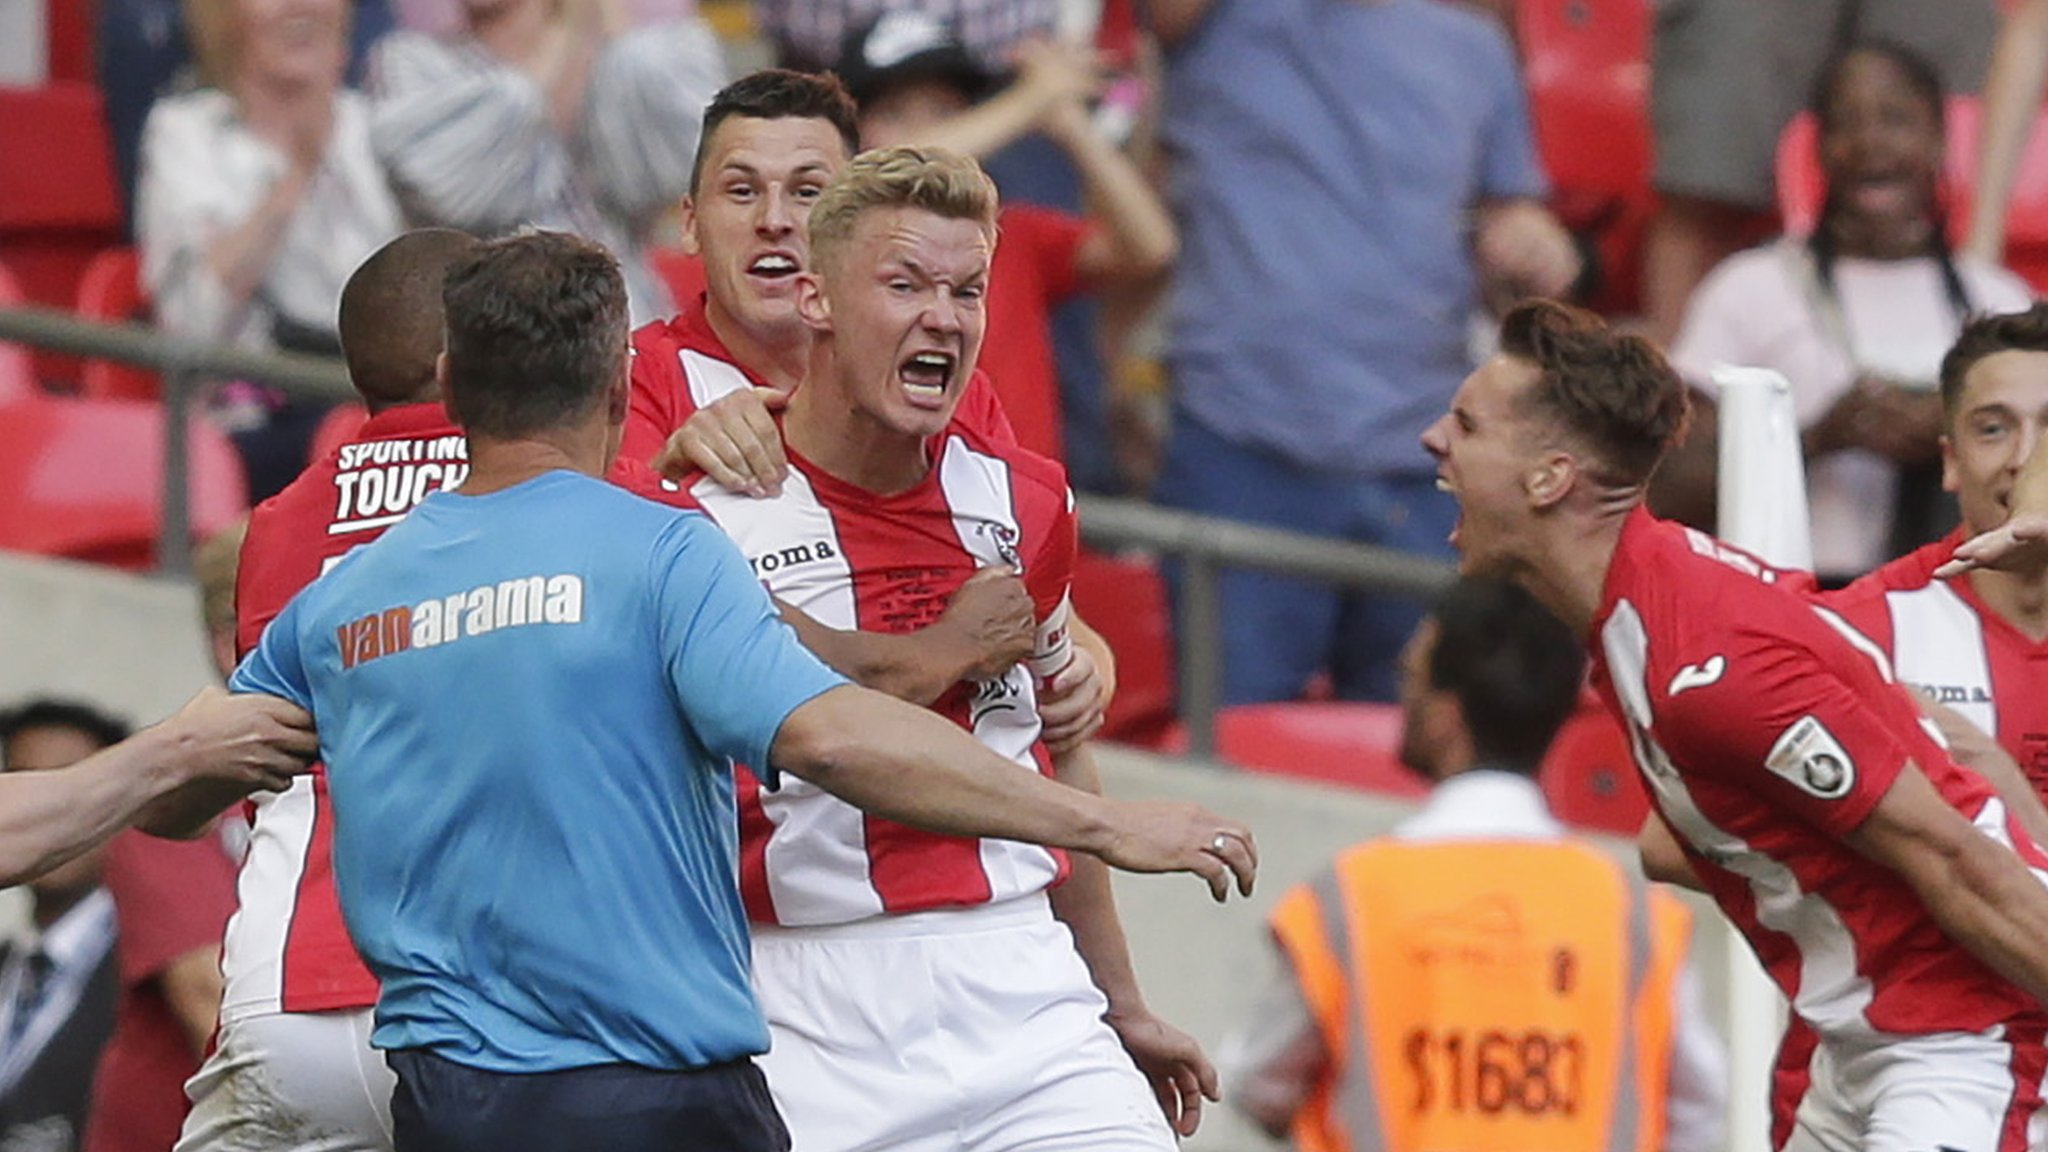 FA Trophy final: Brackley Town beat Bromley 5-4 on penalties after 1-1 draw